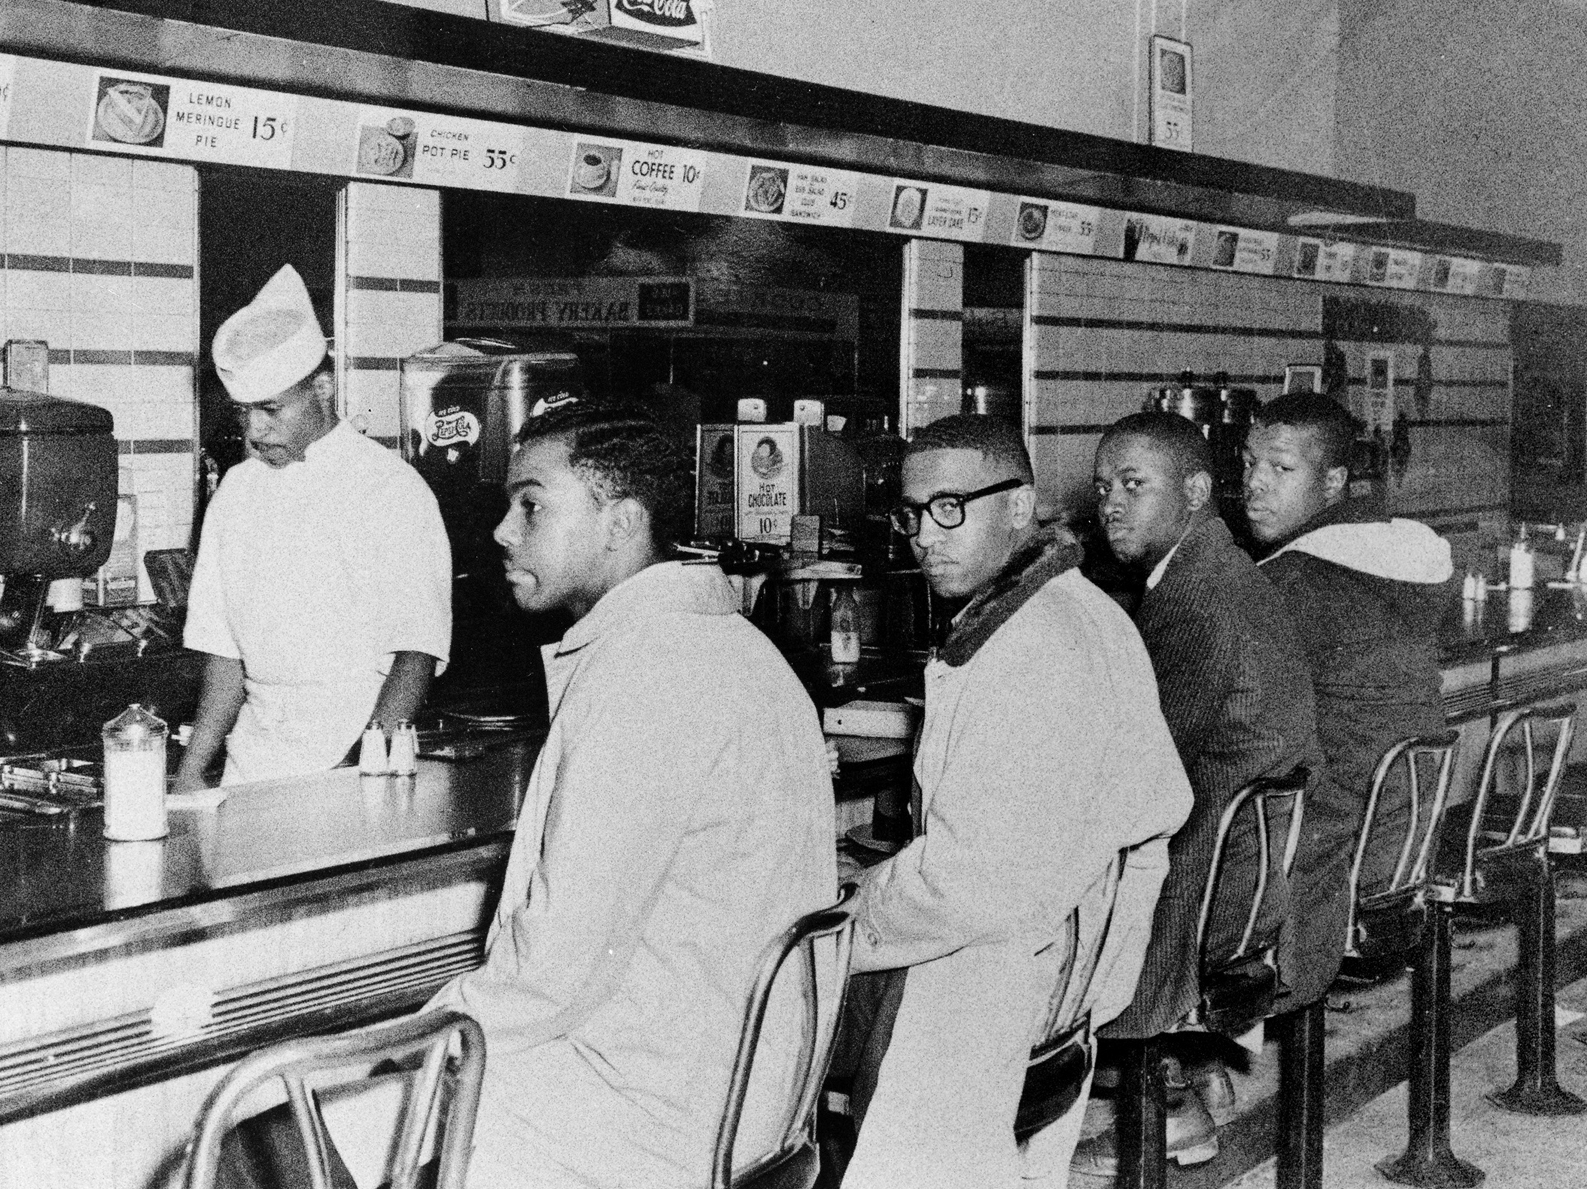 Civil Rights of the 1950s and 1960s